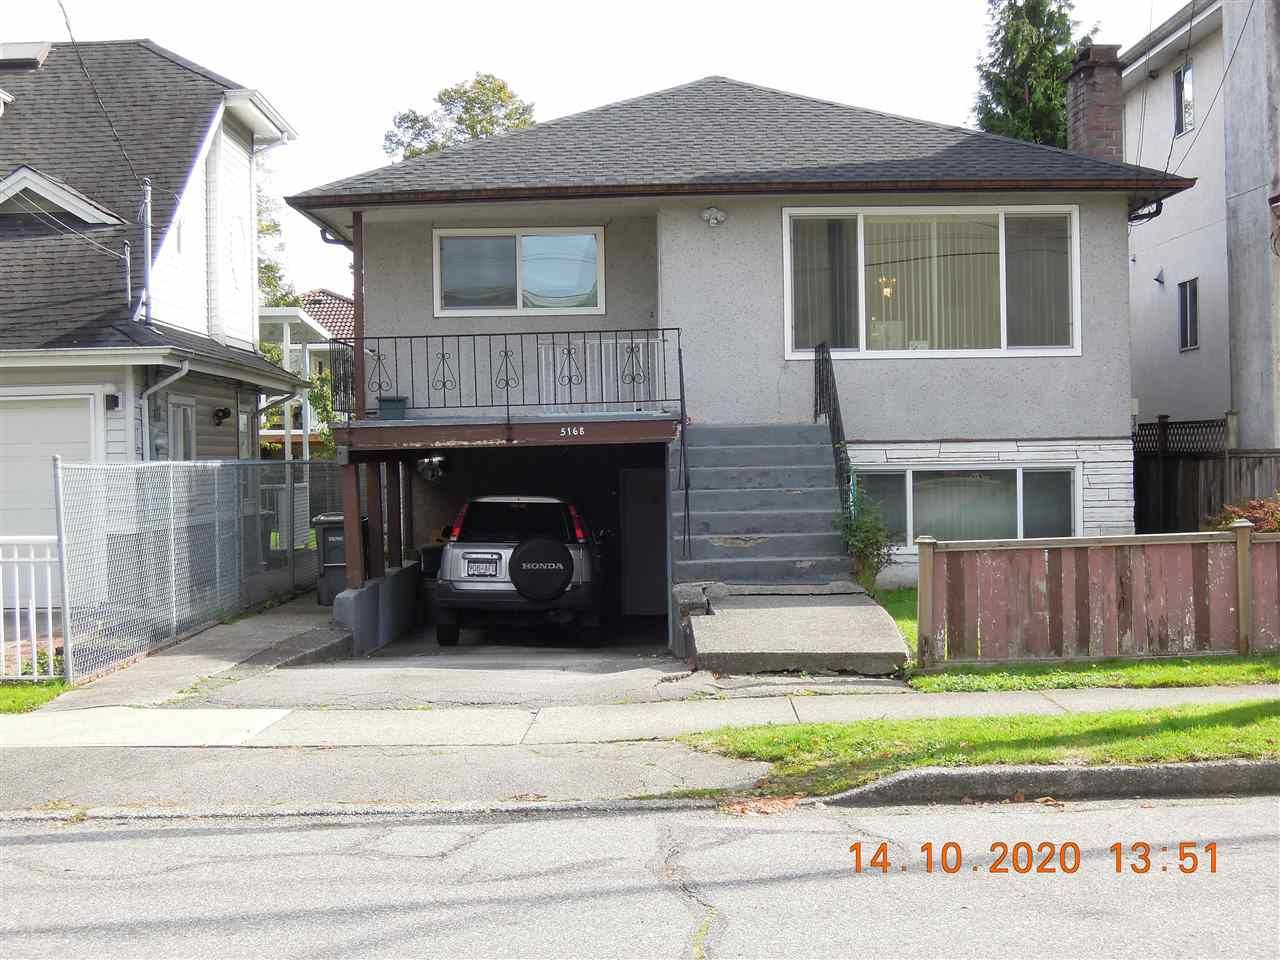 Main Photo: 5168 MOSS STREET in Vancouver: Collingwood VE House for sale (Vancouver East)  : MLS®# R2508875